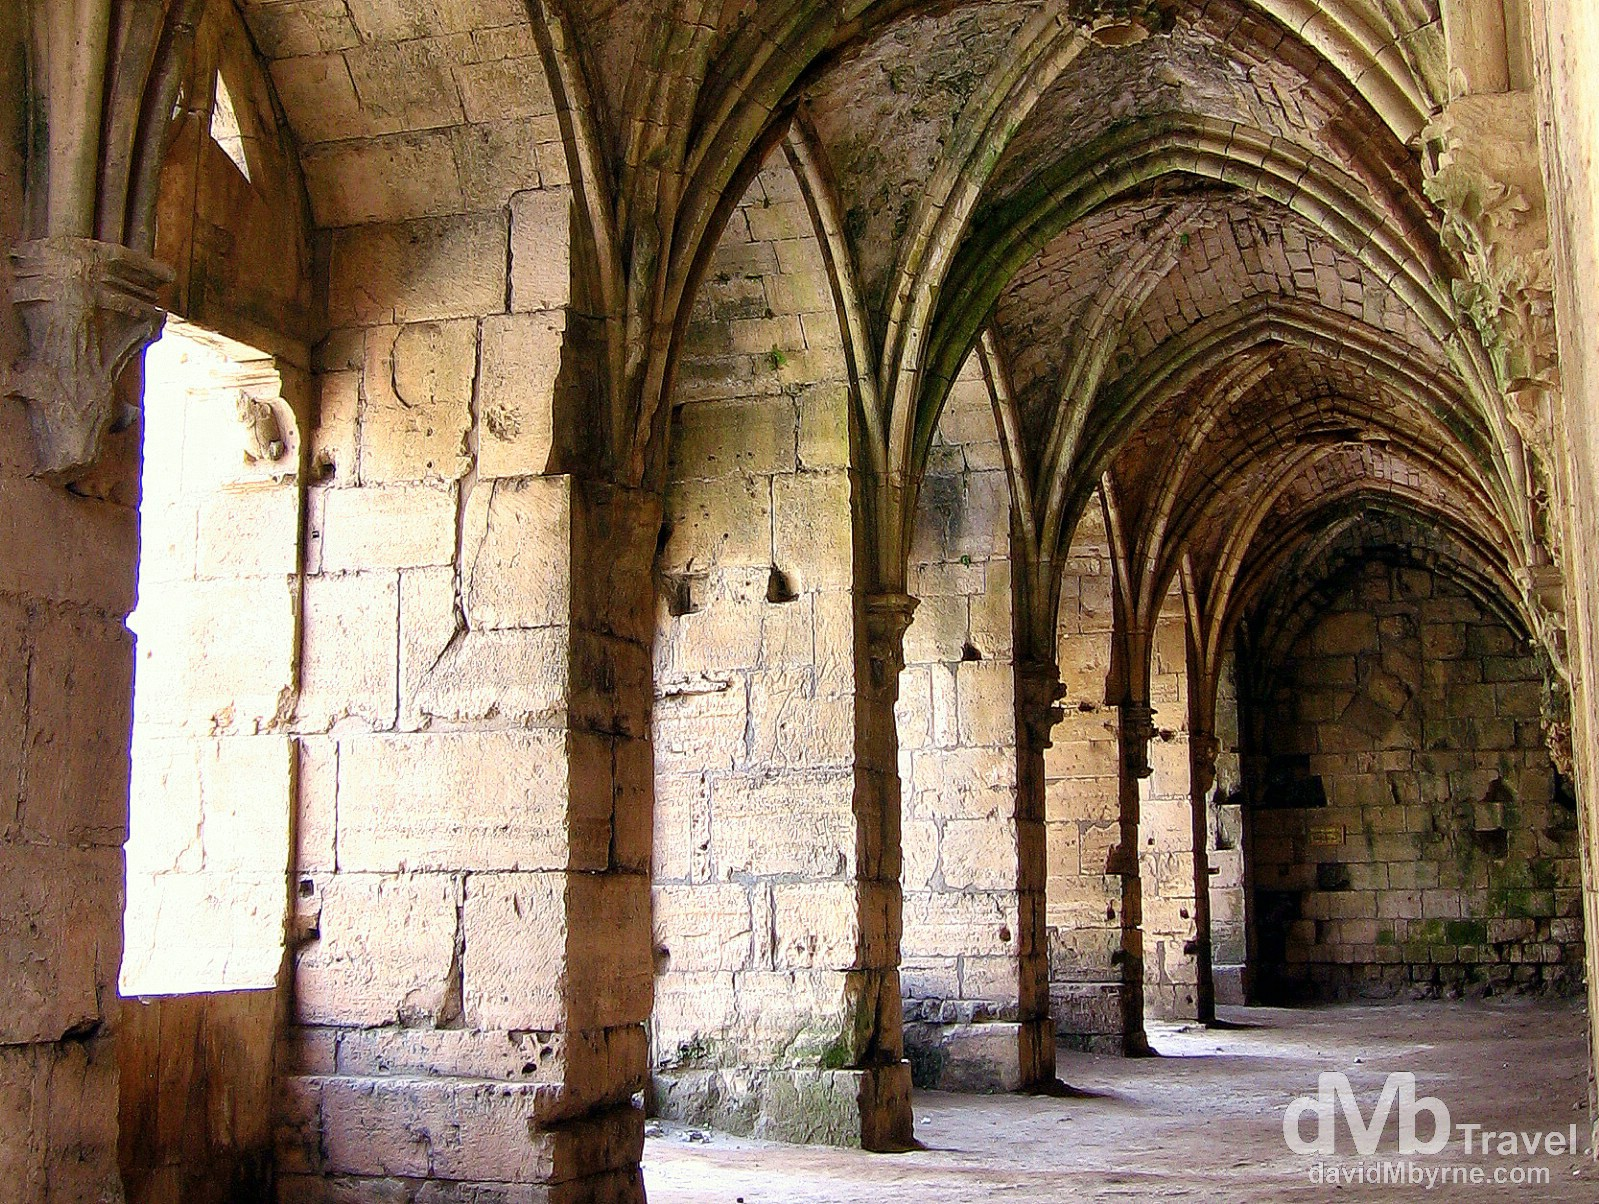 A section of the inside of the old Crusader castle Crac des Chevaliers in Syria. May 7, 2008.